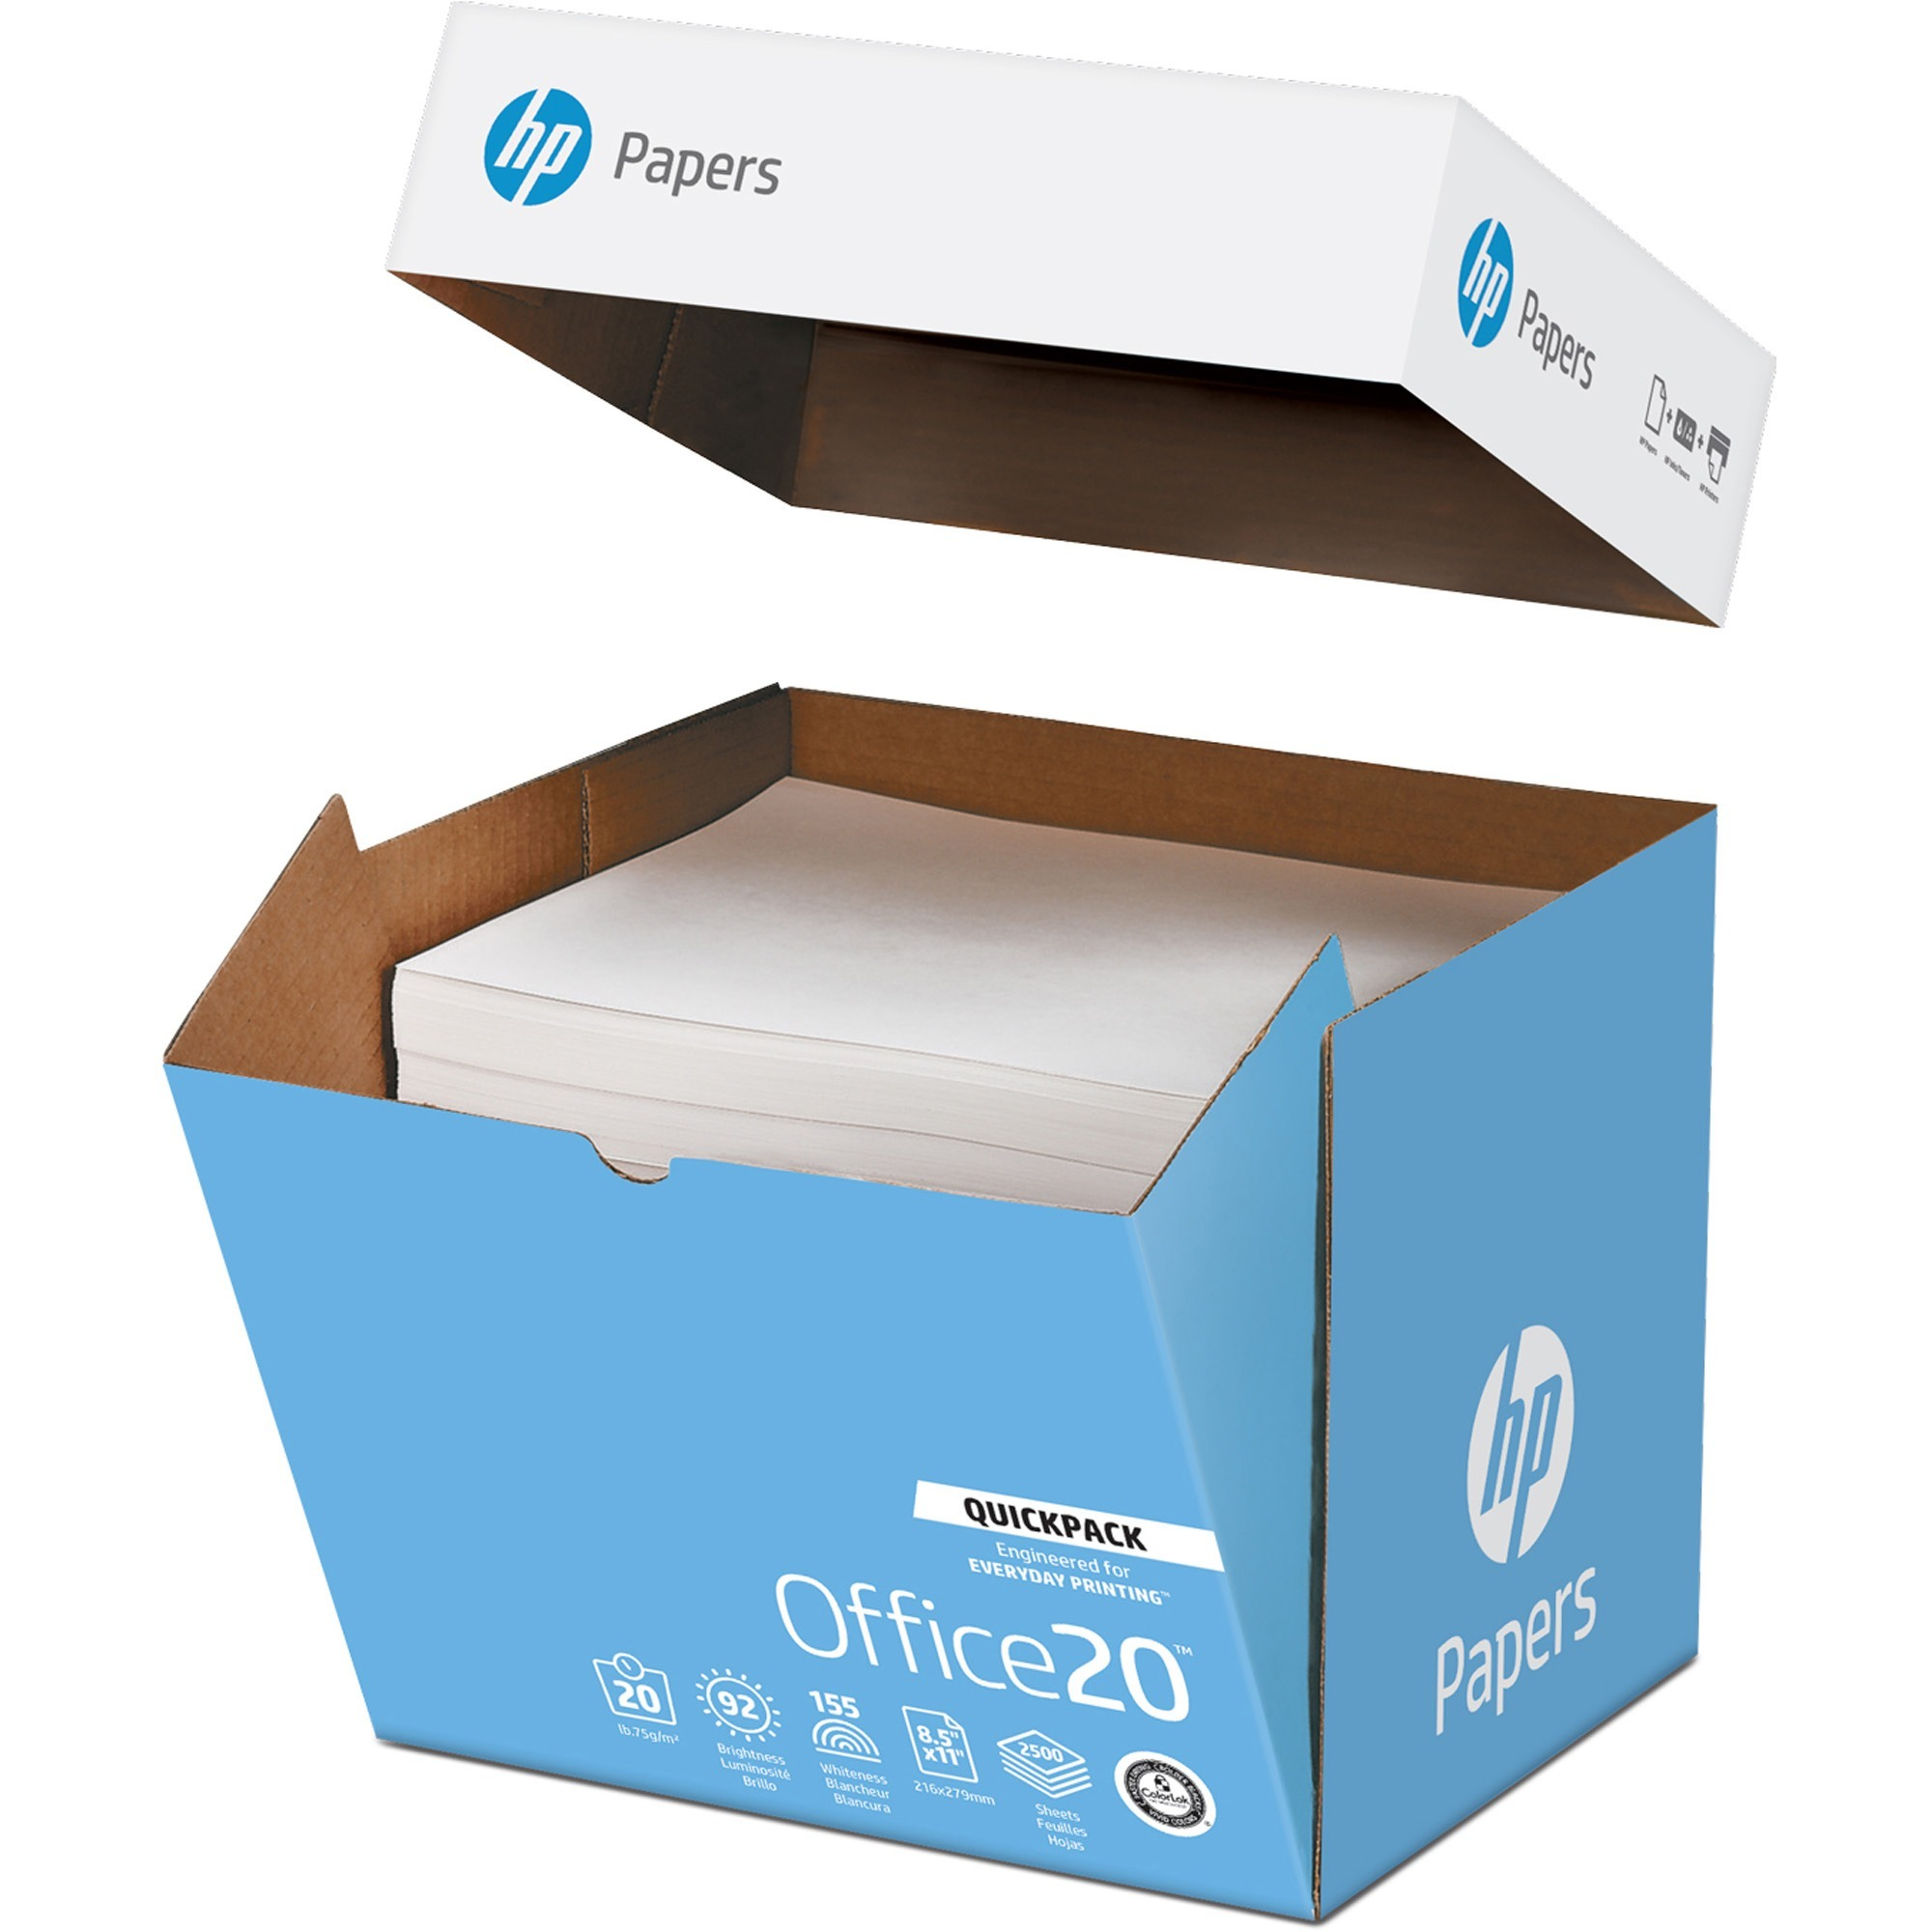 International Paper, HEW112103, HP Office Quickpack Paper, 2500 / Carton, White